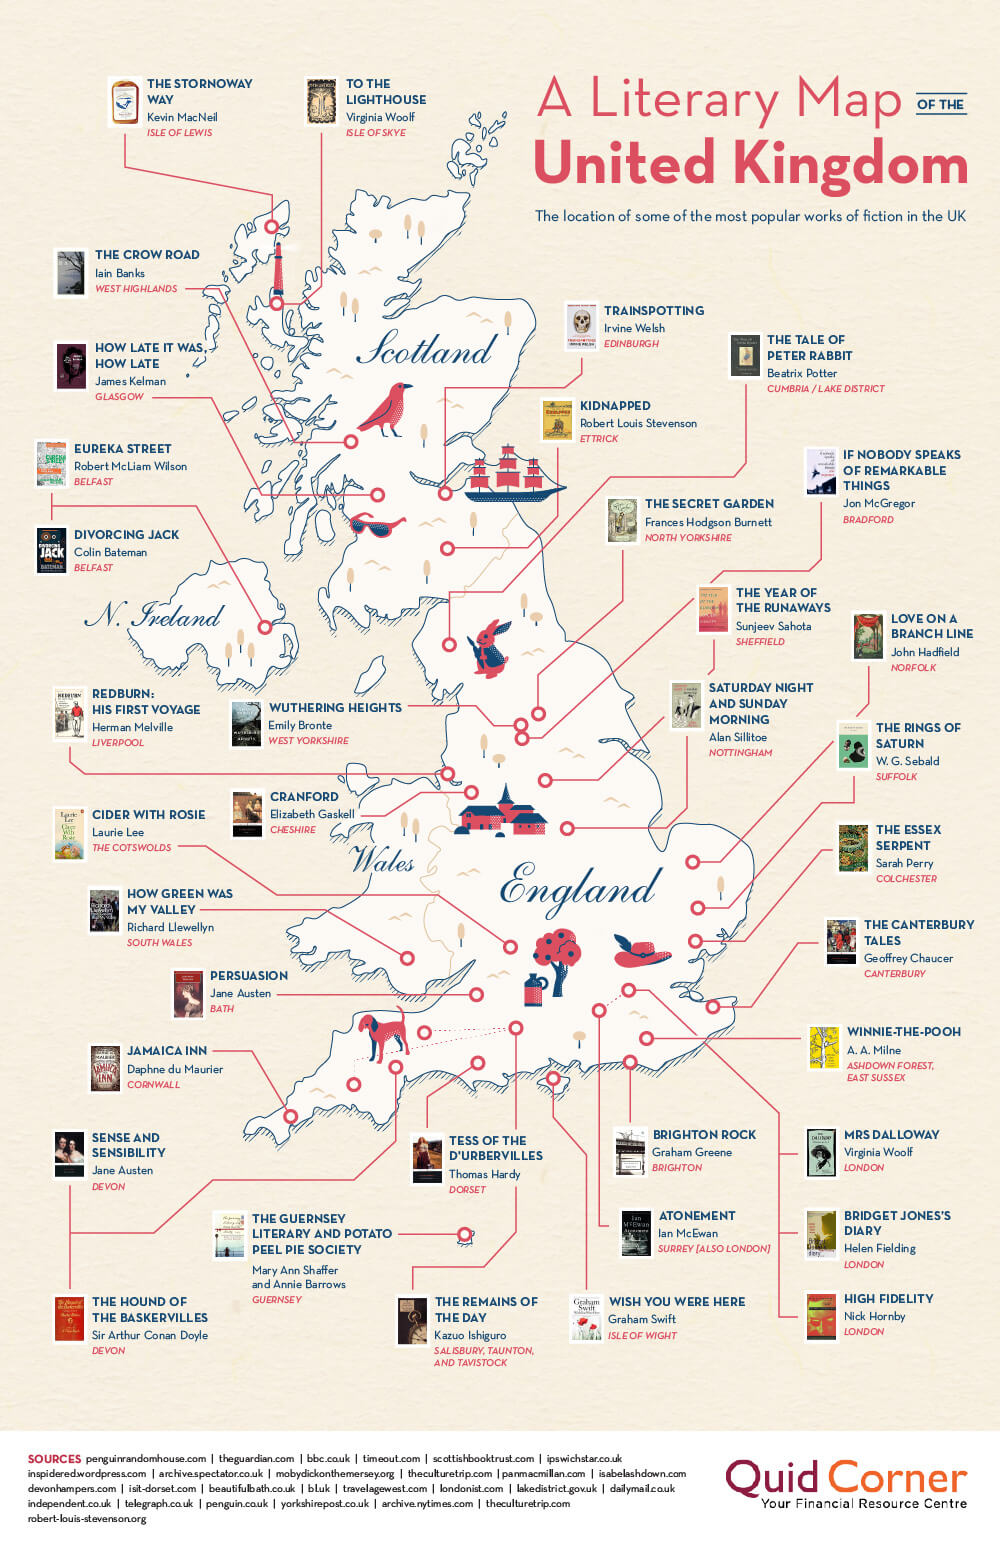 A Literary Map of the United Kingdom